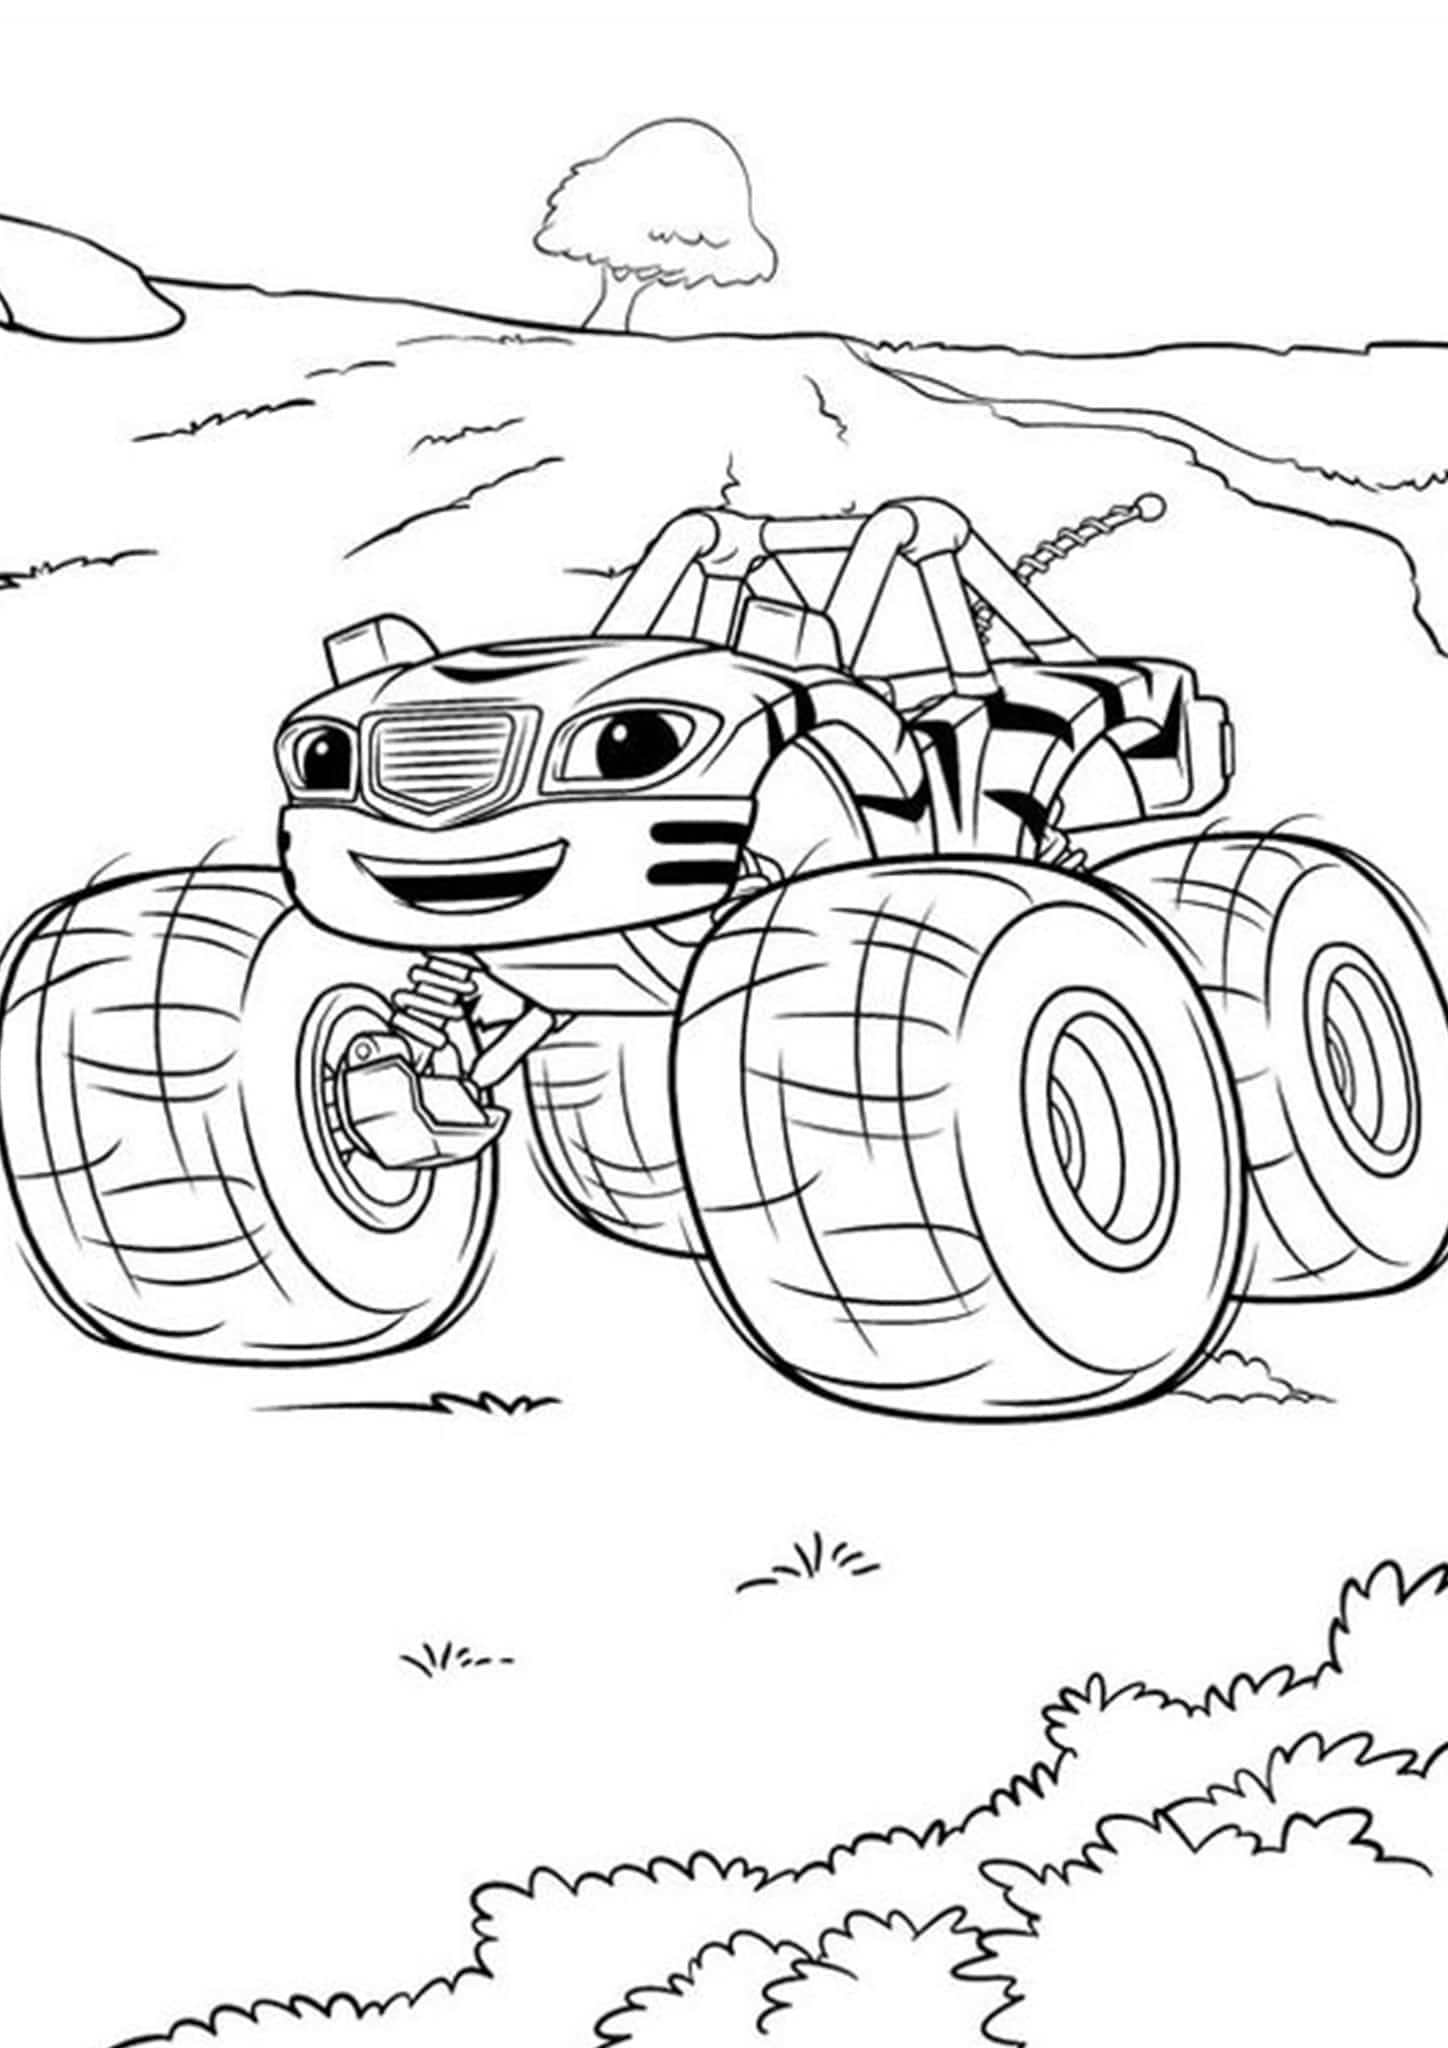 monster truck coloring pages easy large monster truck coloring page for kids transportation easy monster coloring truck pages